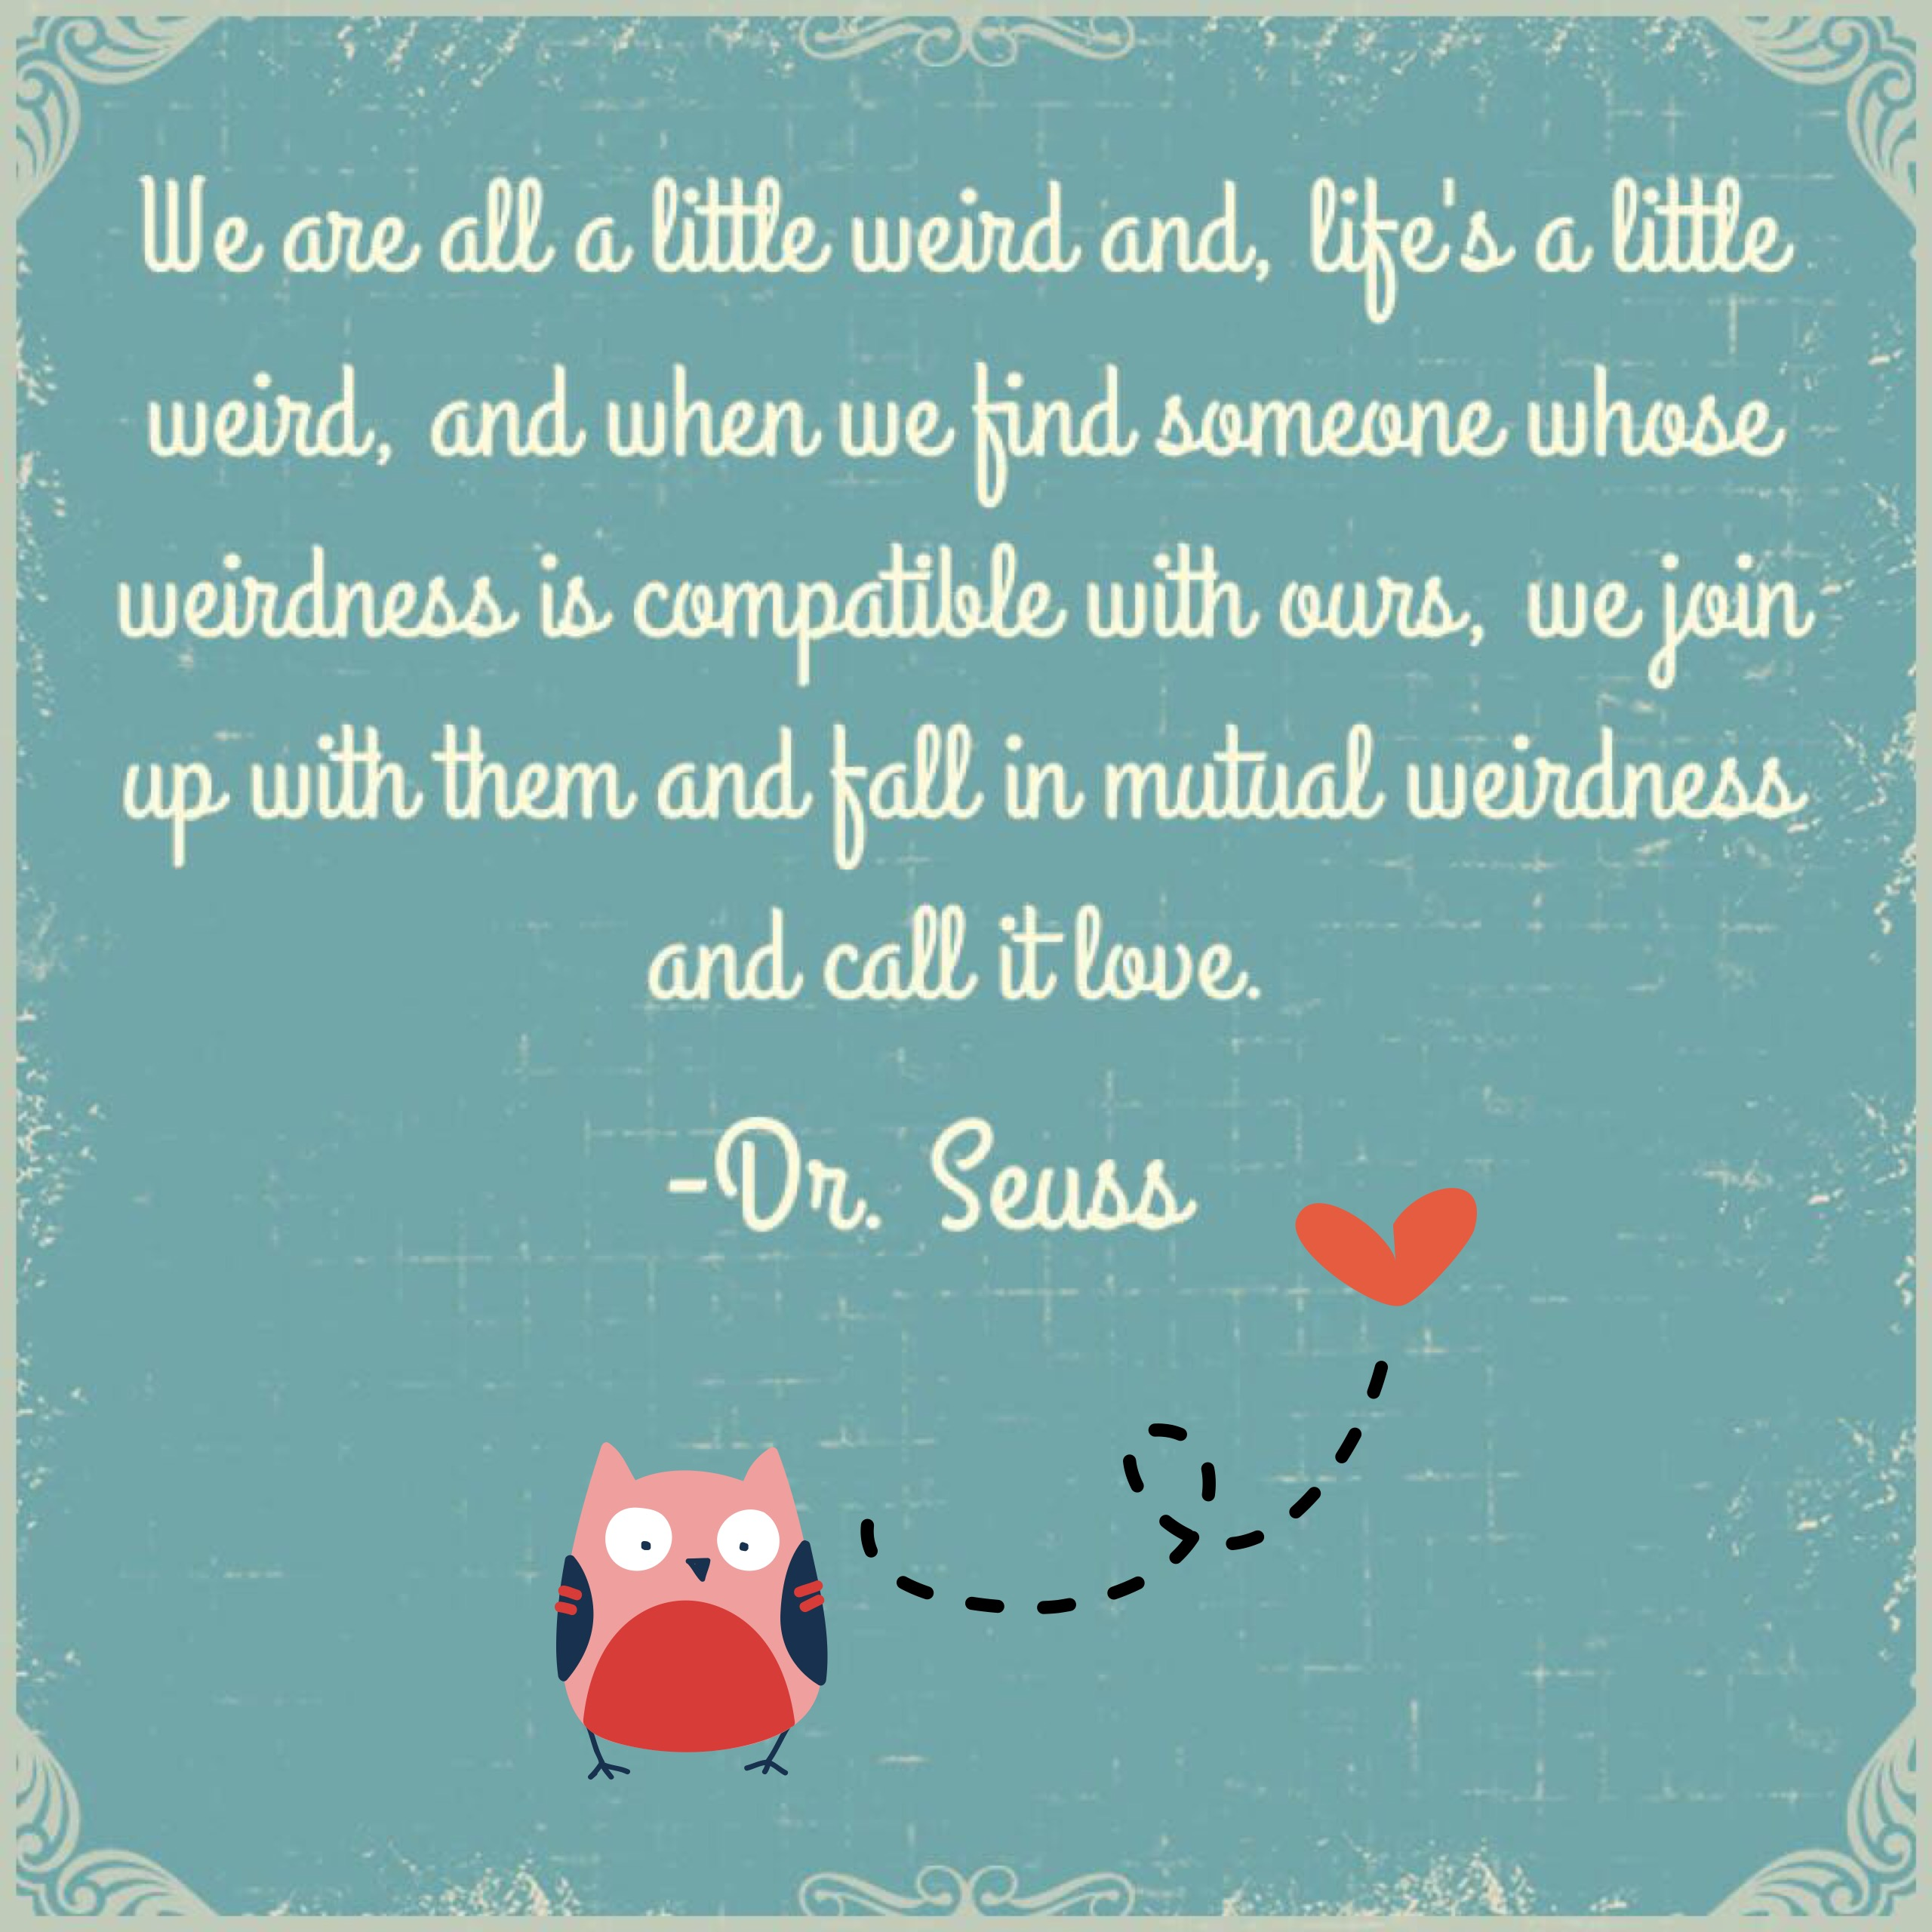 Dr Seuss Love Quotes Entrancing Fall In Mutual Weirdness And Call It Love…  The Lone Panda